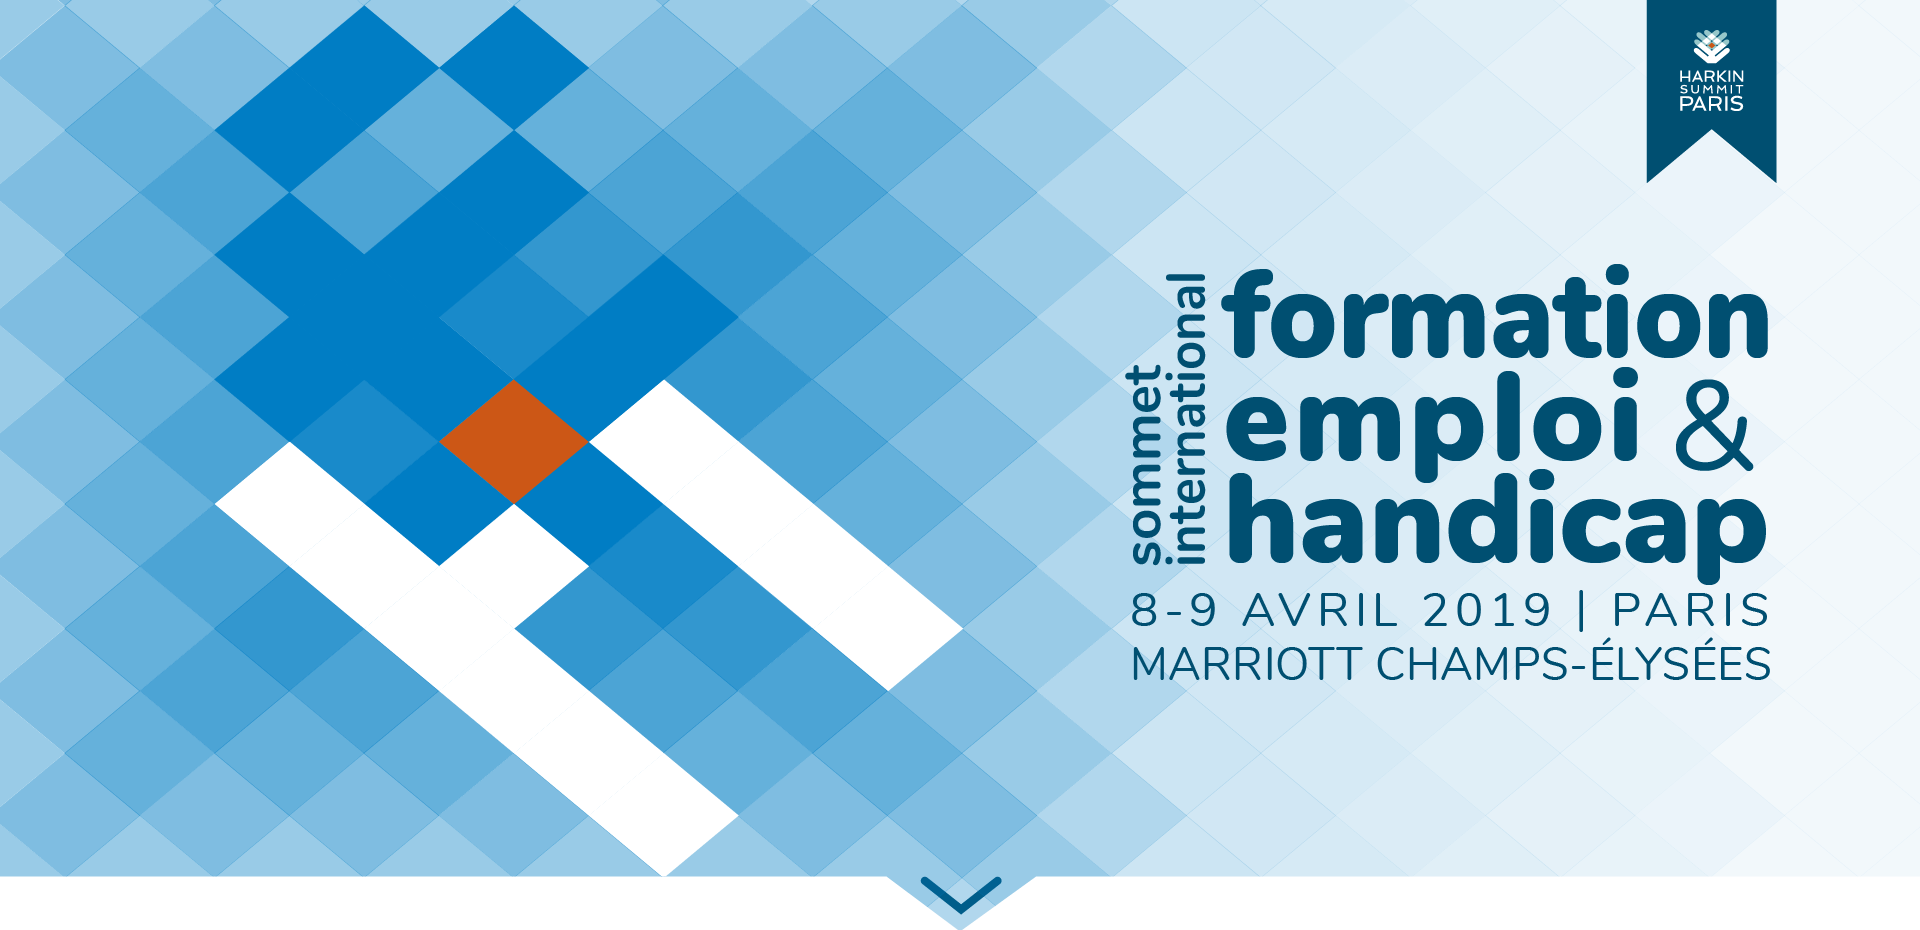 Sommet International Formation emploi & handicap / 8-9 avril - Paris, Marriott Champs Elysée